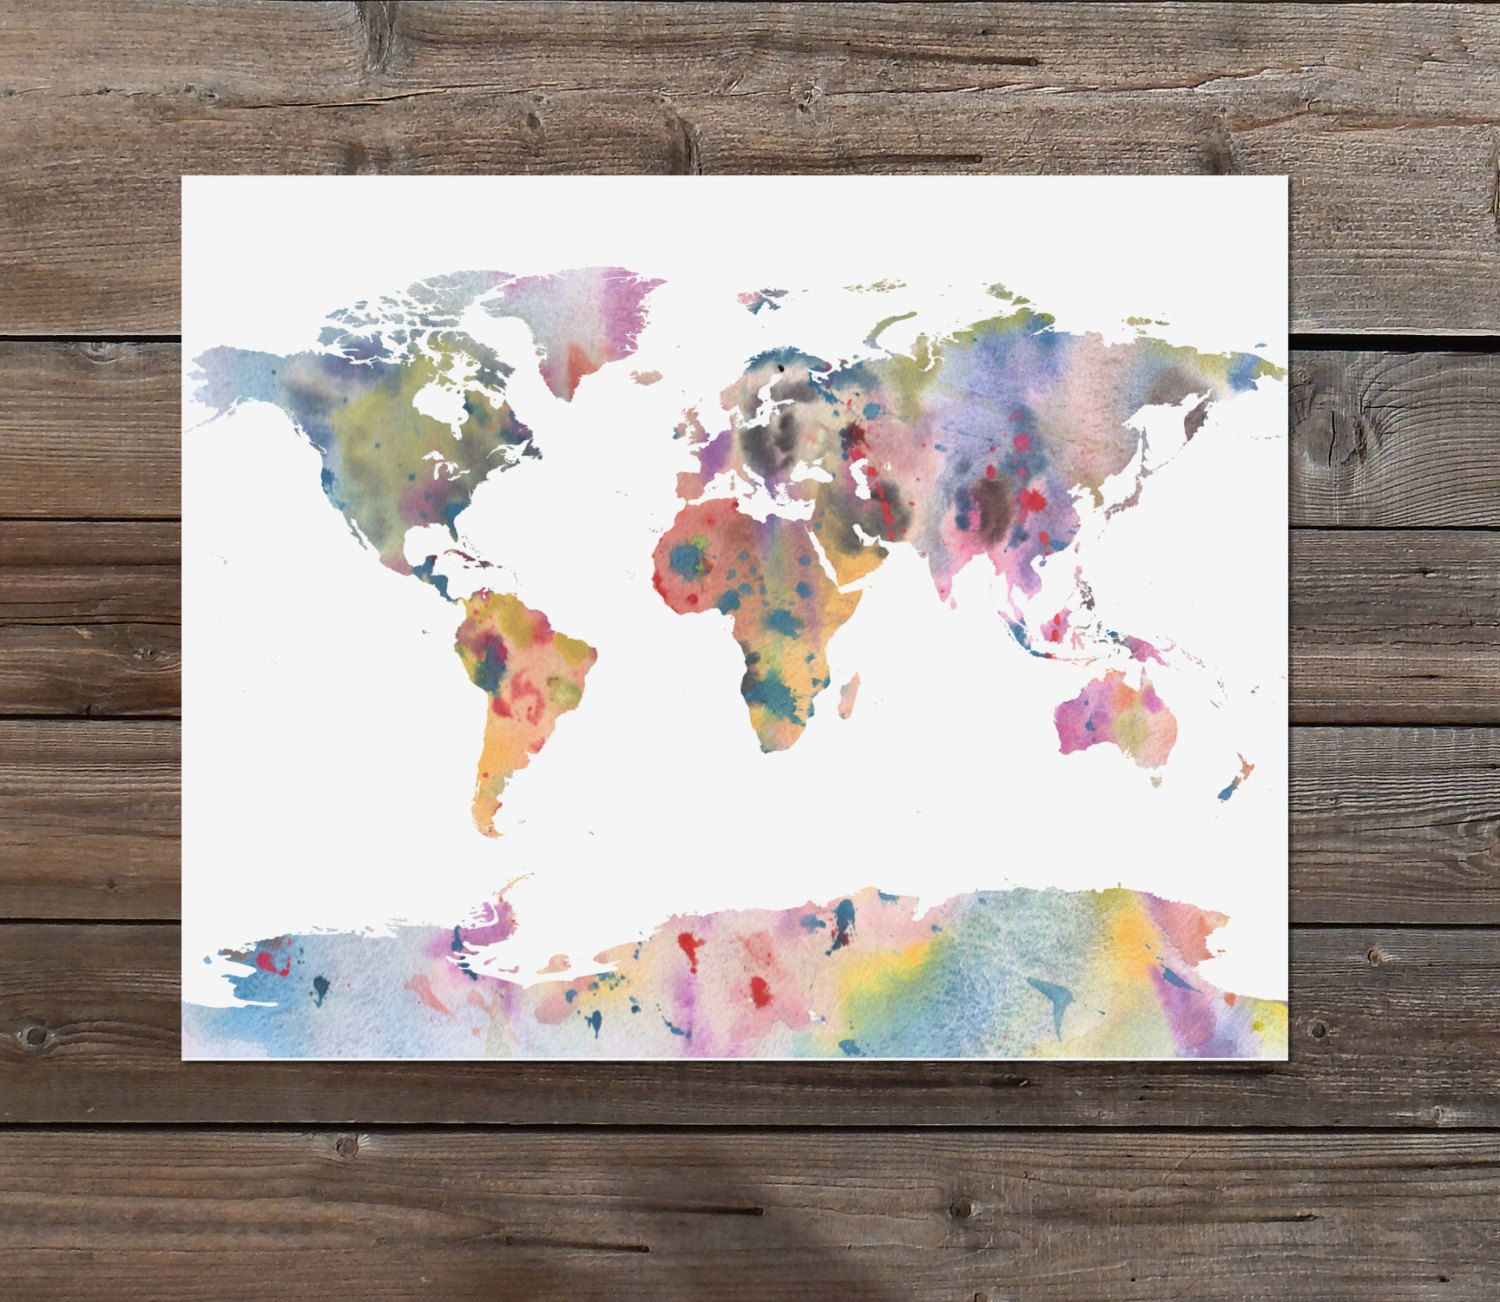 Sale watercolor abstract world map in atlas art print instant sale watercolor abstract world map in atlas art print instant printable download dorm art student childrens gumiabroncs Images